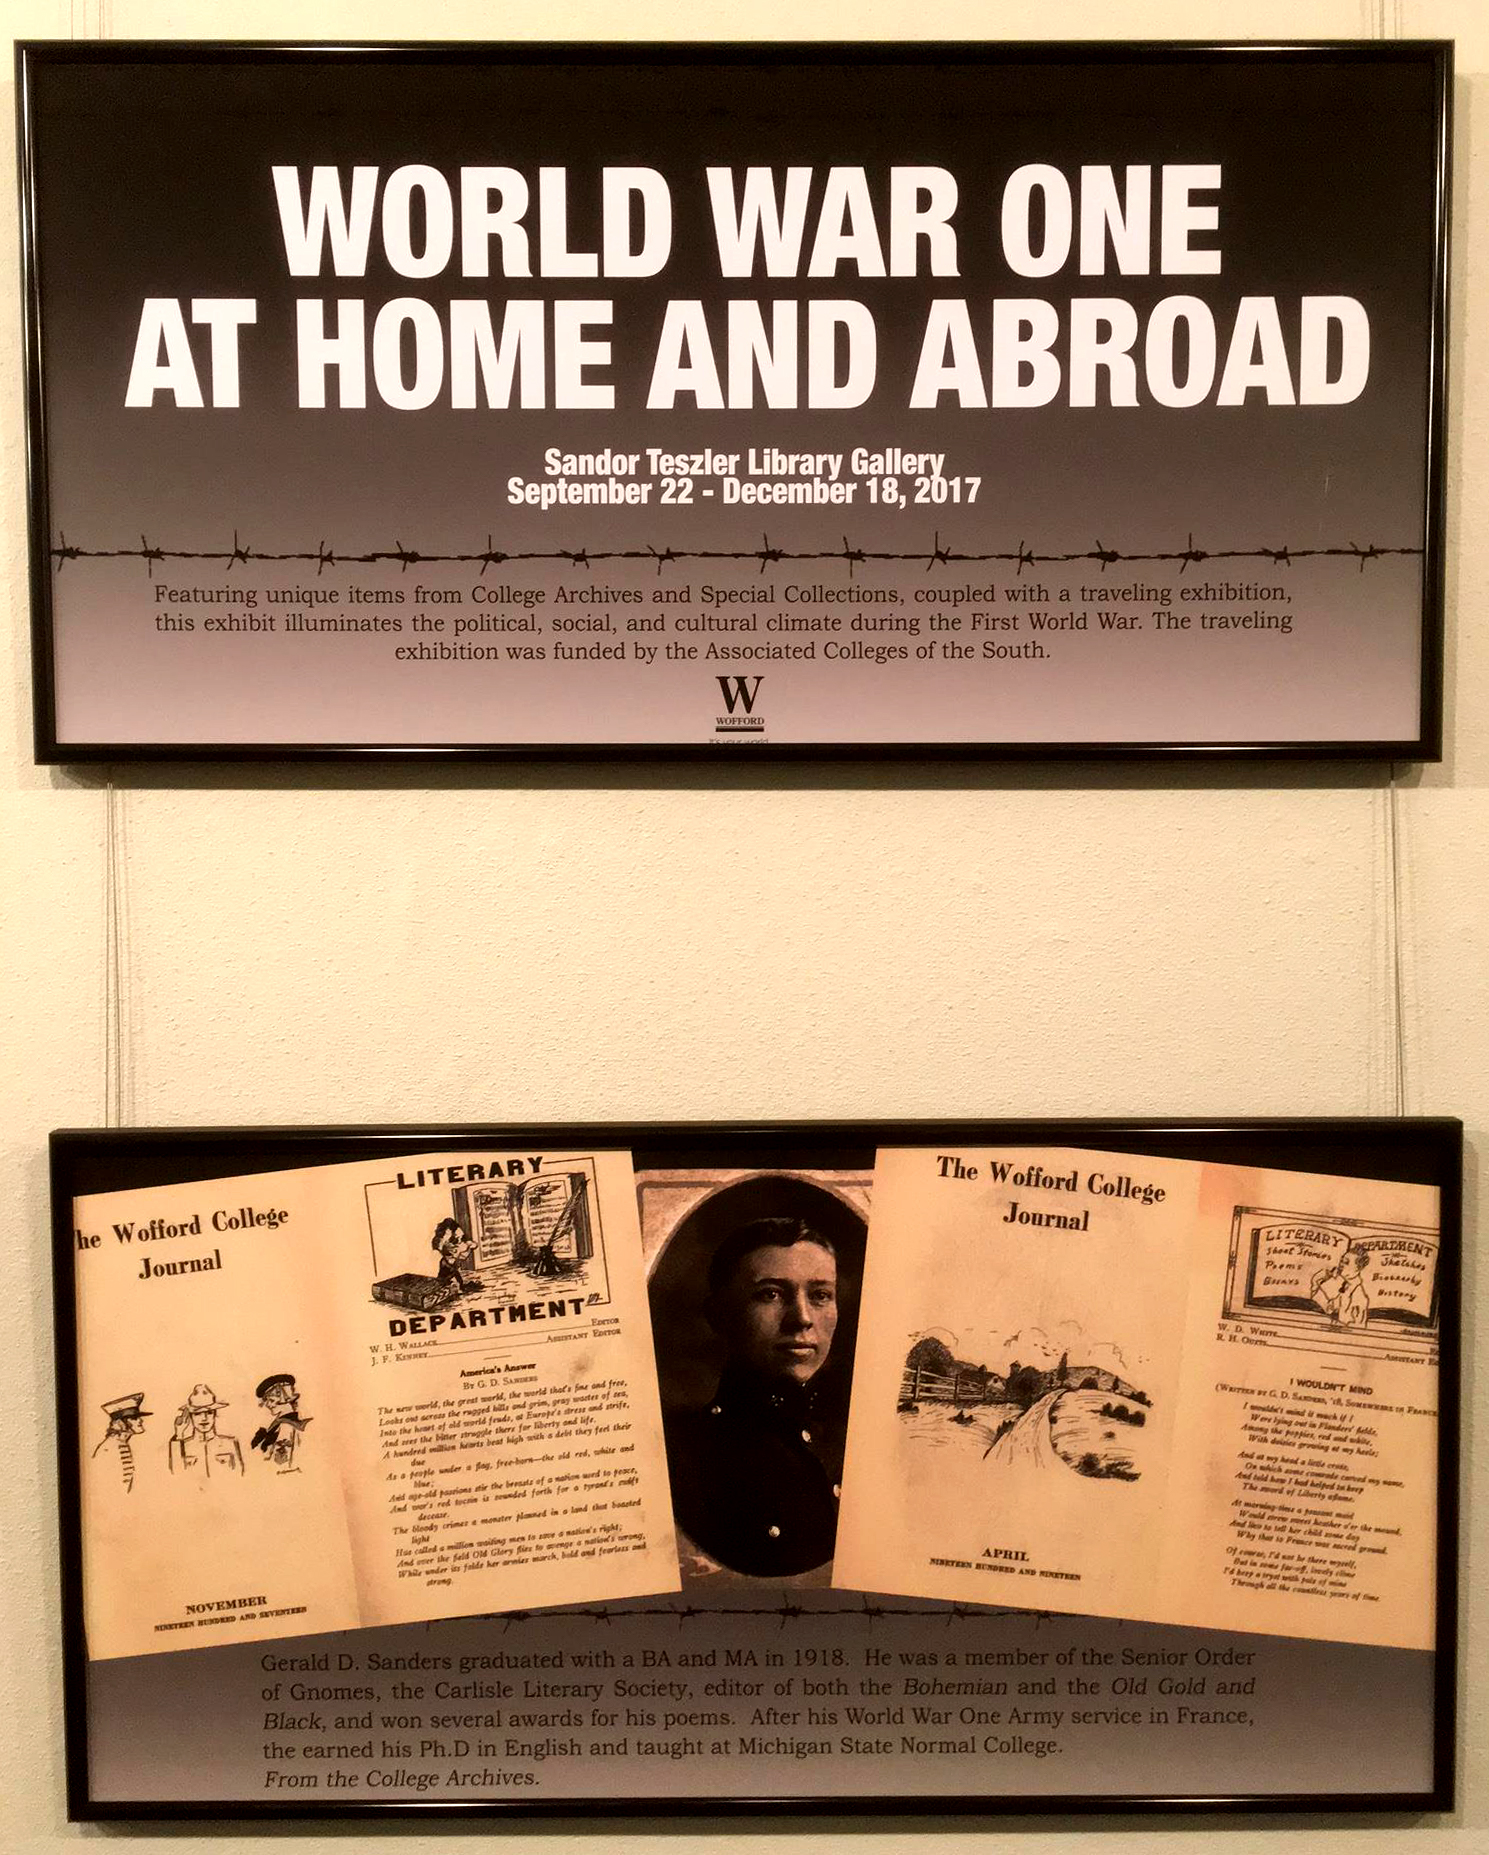 World War One: At Home and Abroad exhibit title and Gerald Sanders panels